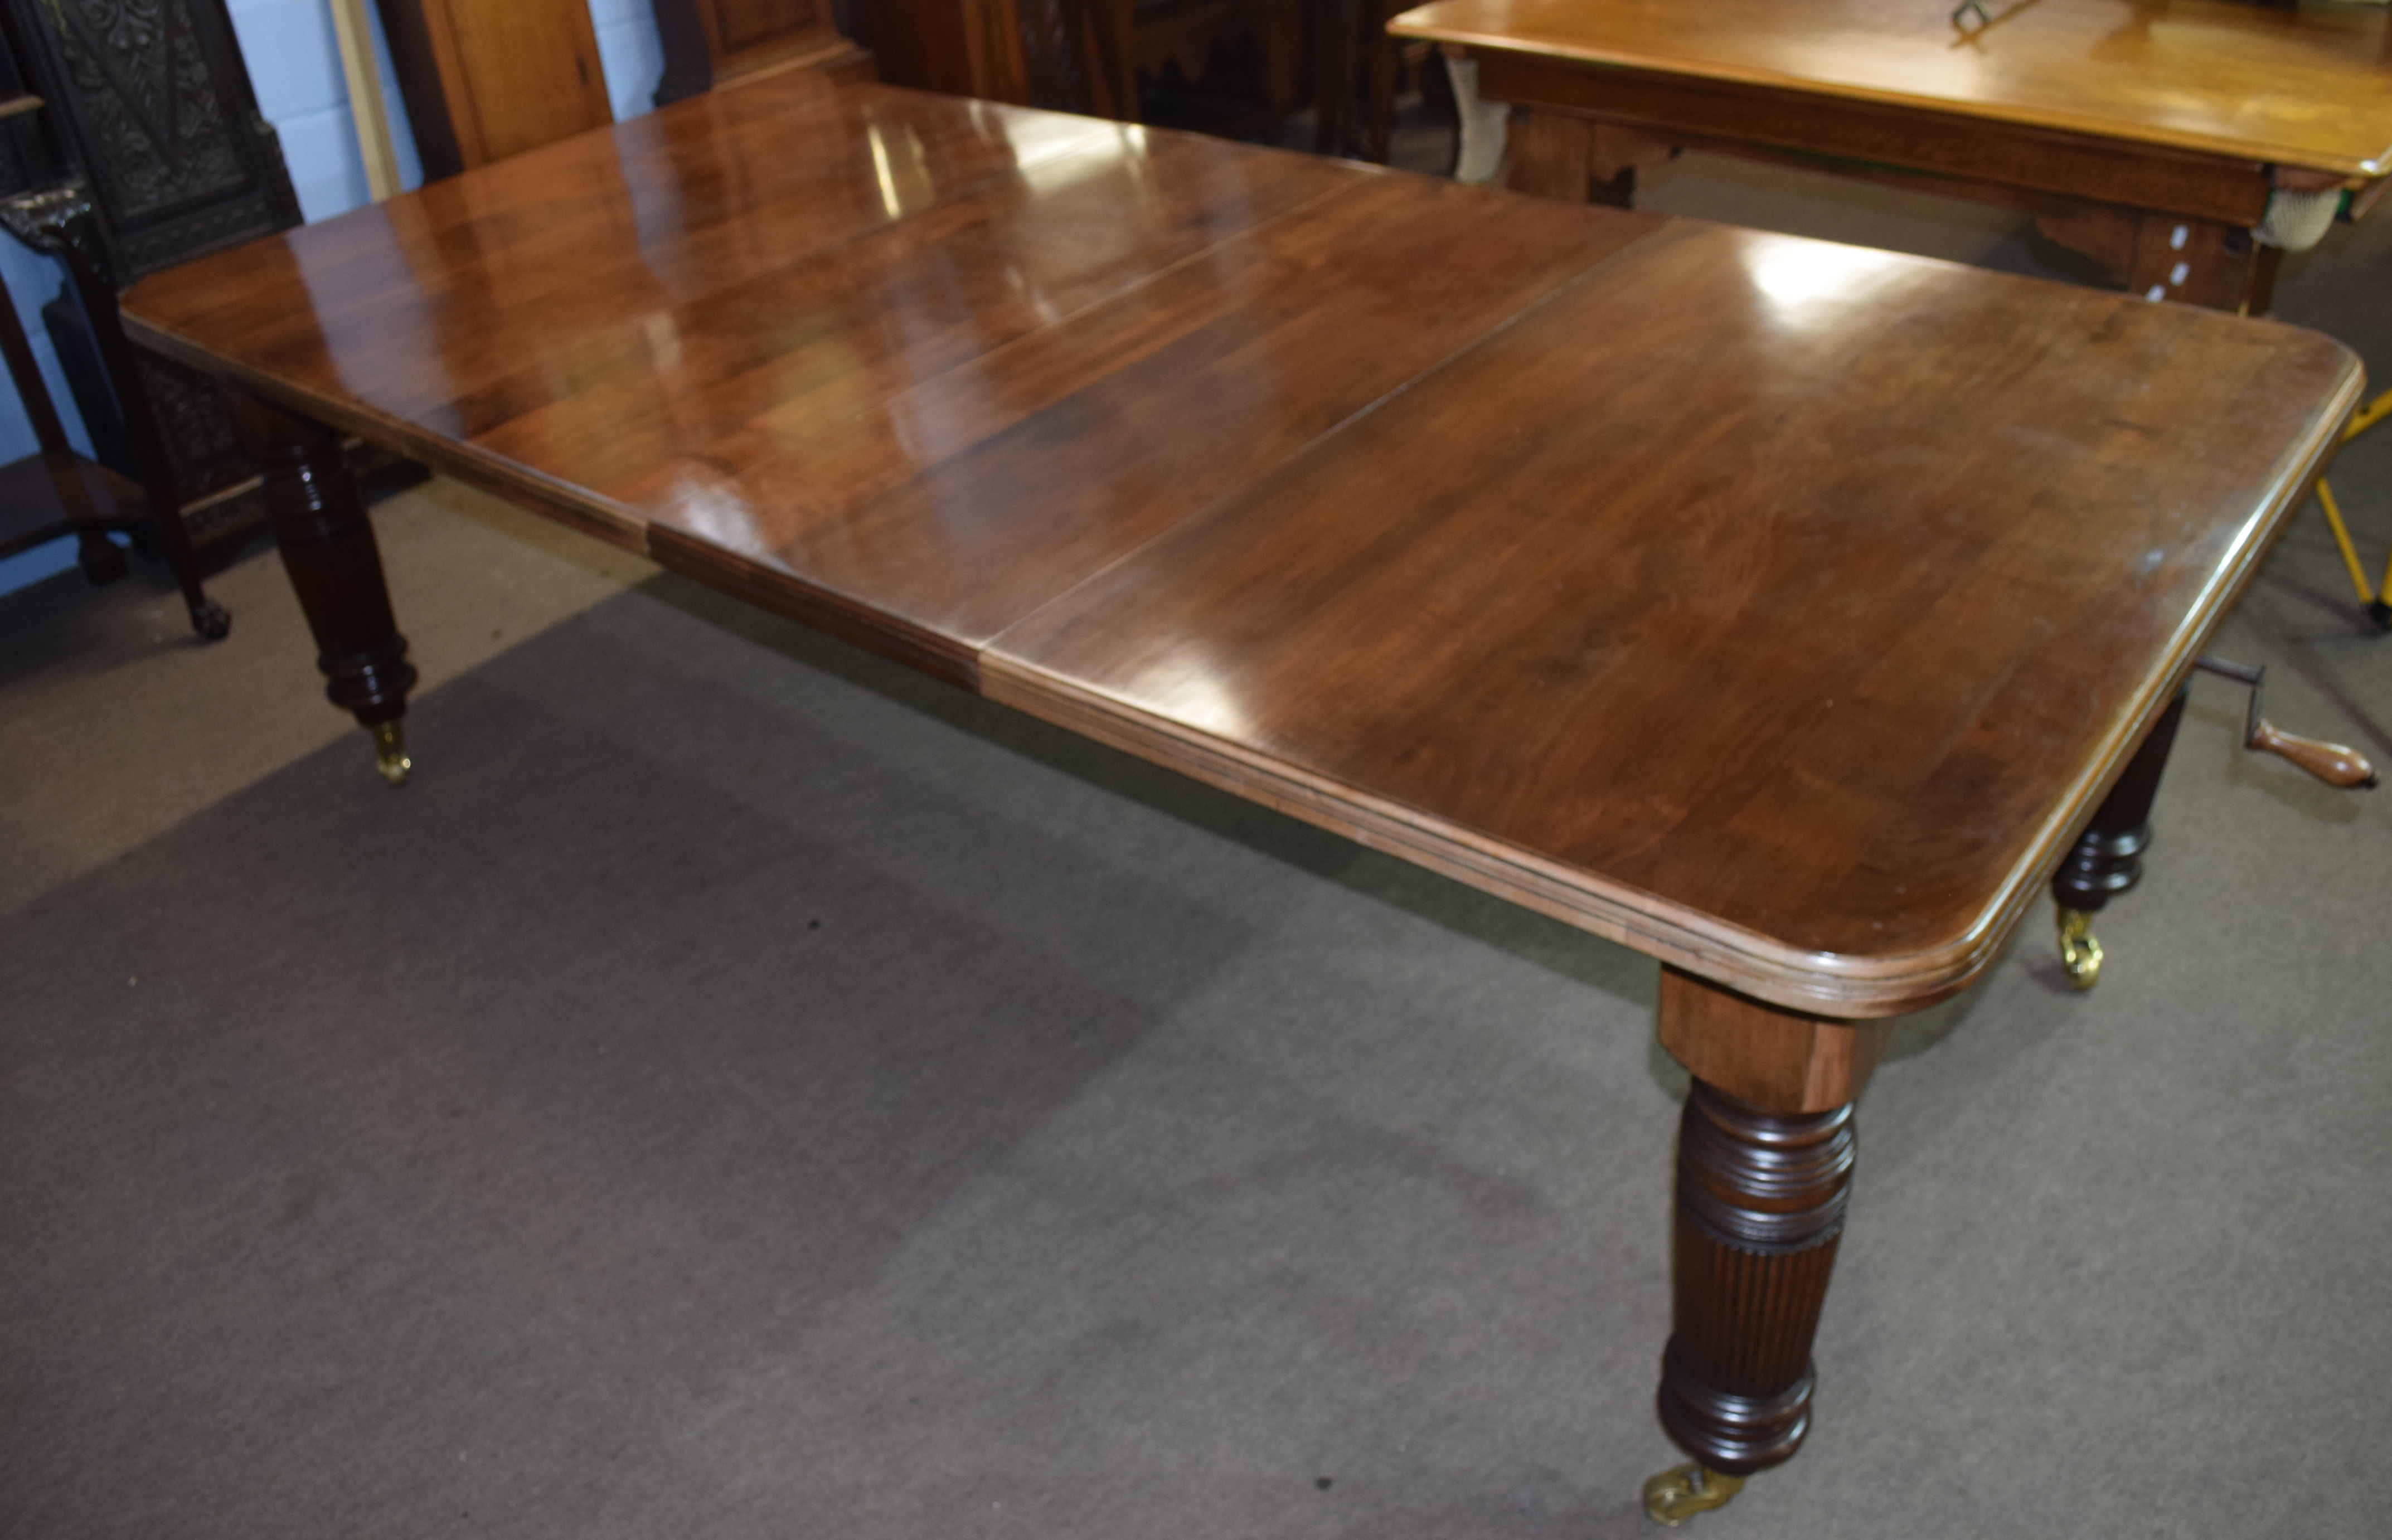 Late Victorian mahogany extending dining table raised on fluted legs and brass casters, 237cm wide - Image 6 of 6